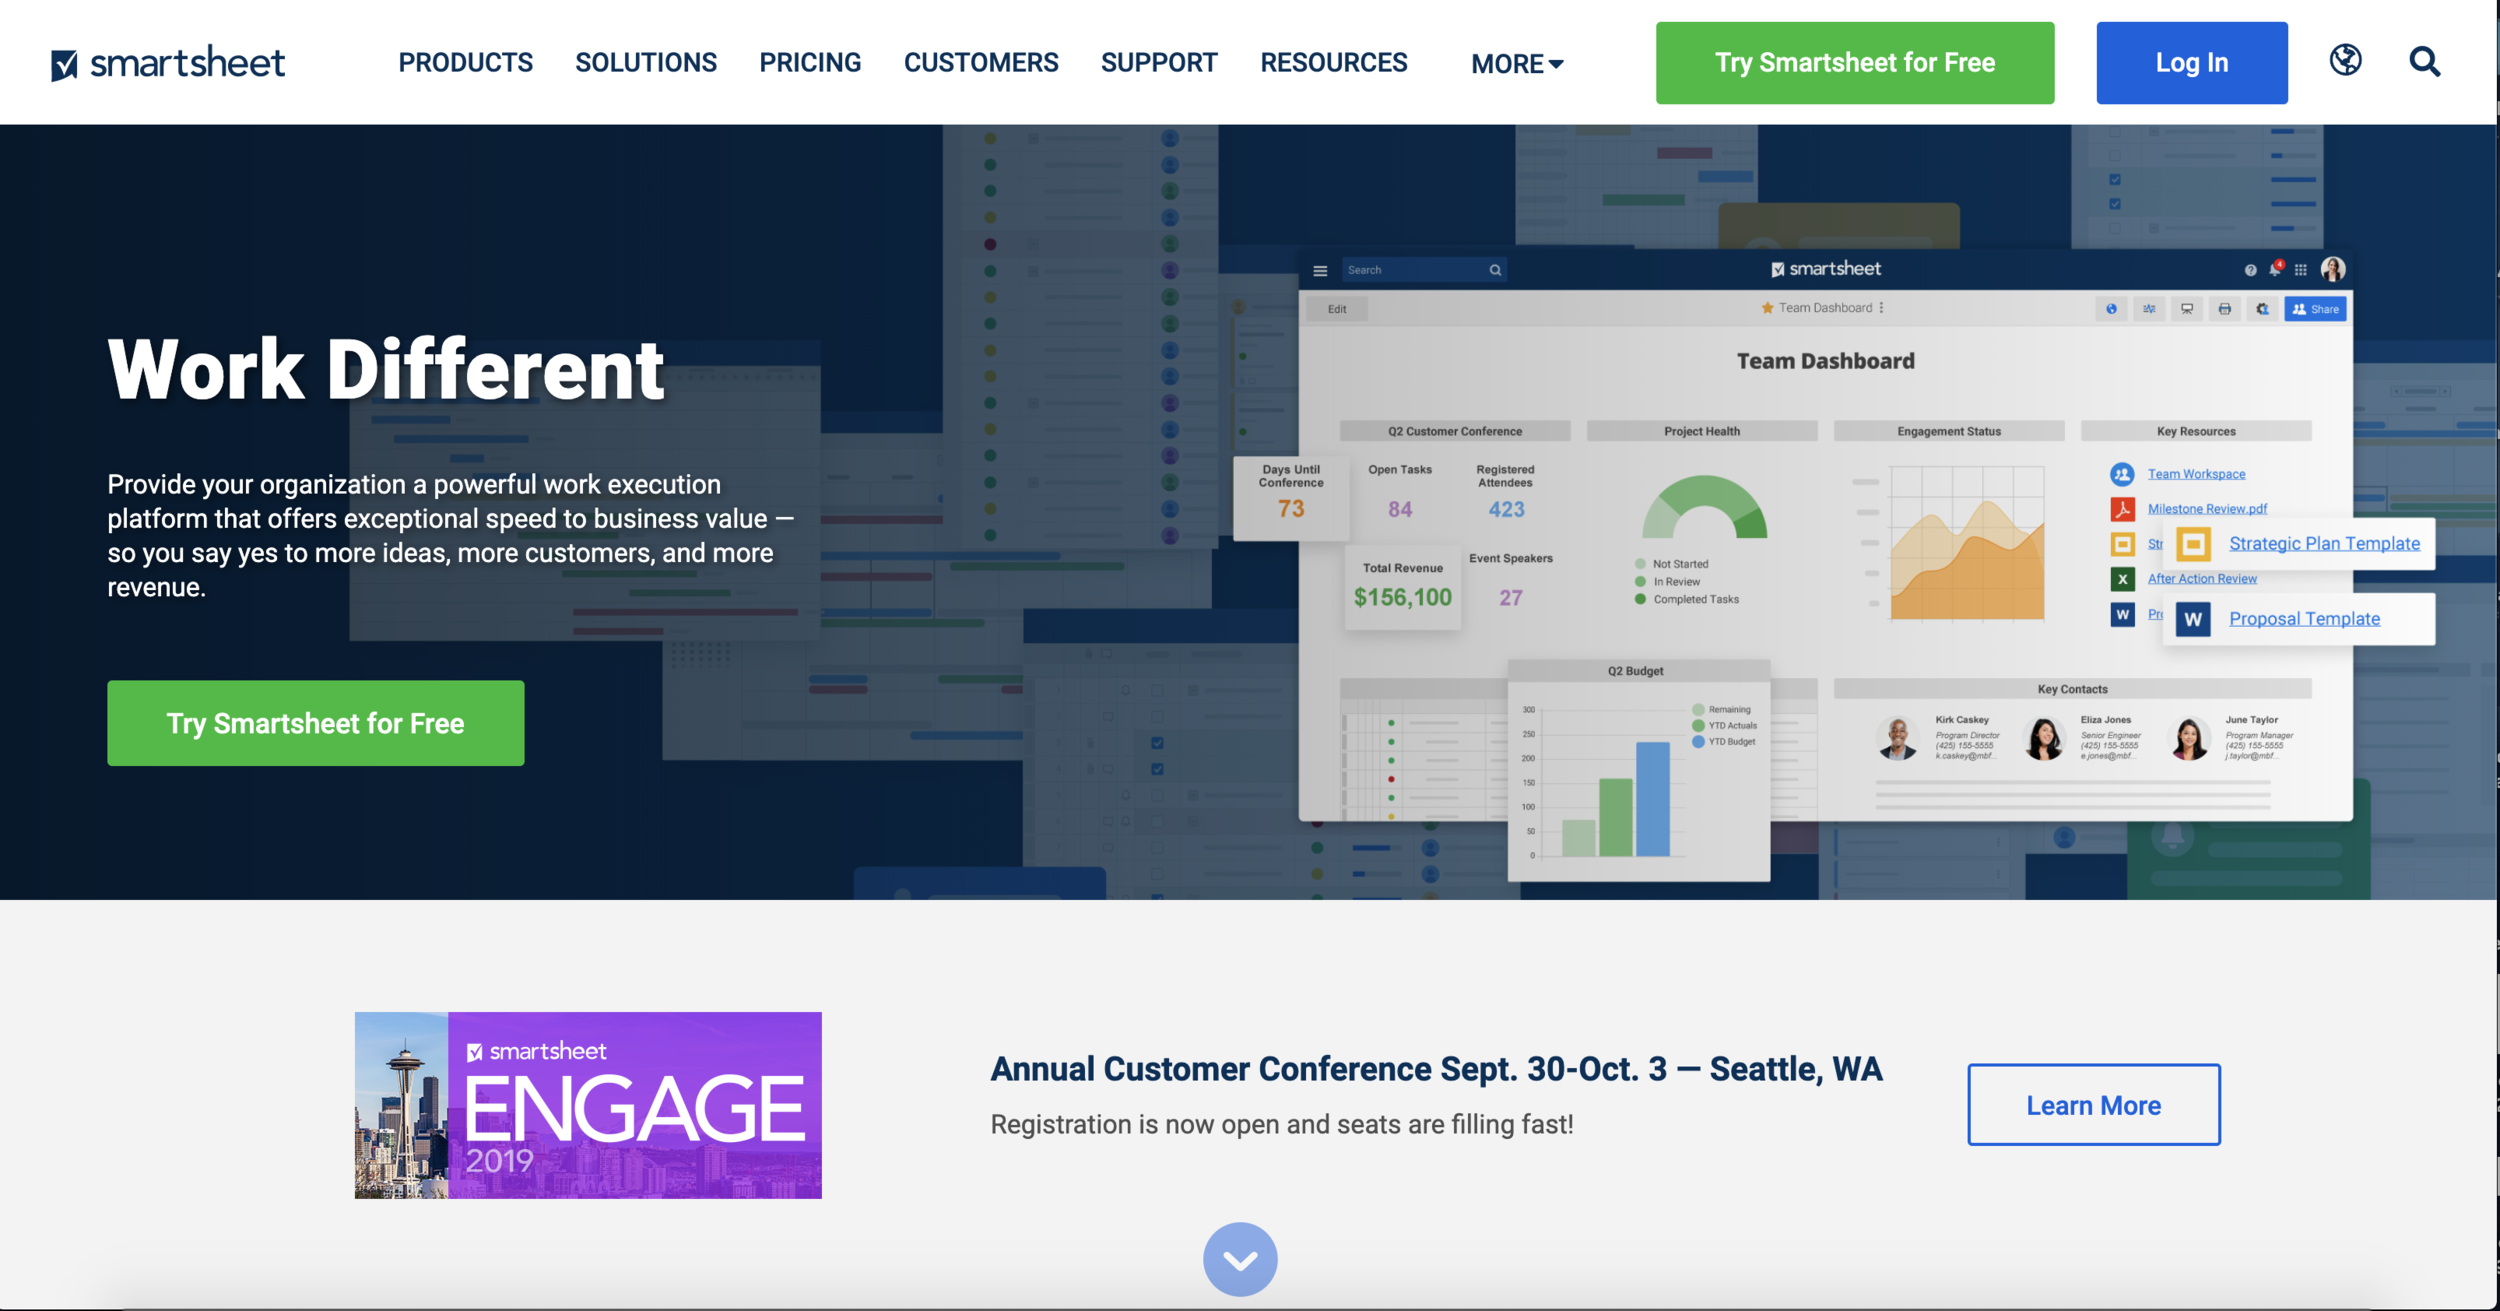 Smartsheet homepage after the redesign